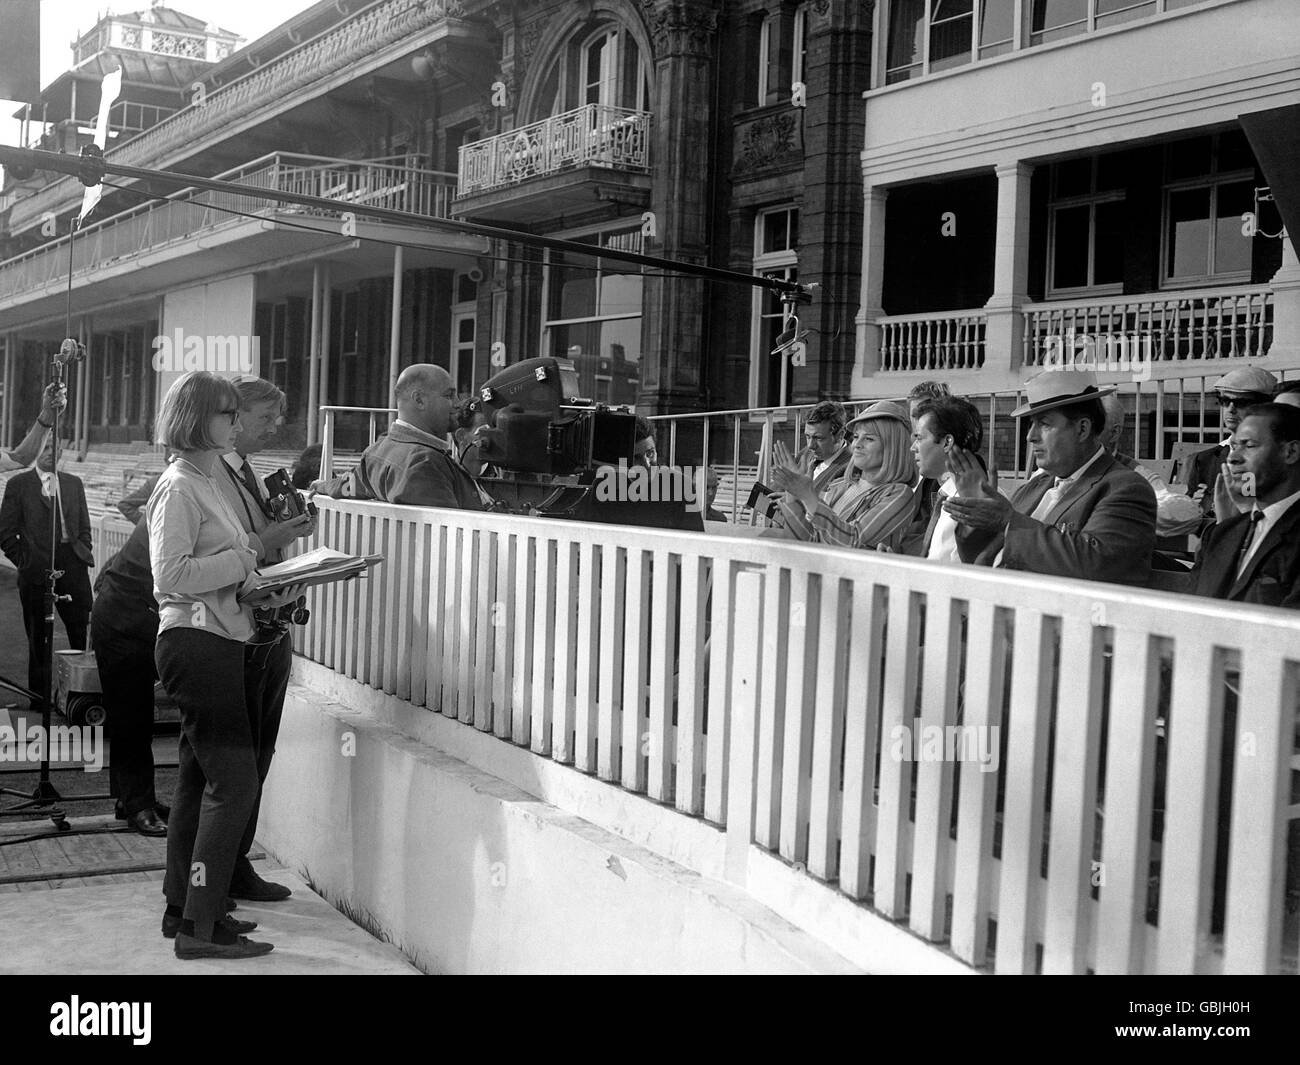 Entertainment - Filming of 'Darling' - Lord's Cricket Ground - Stock Image